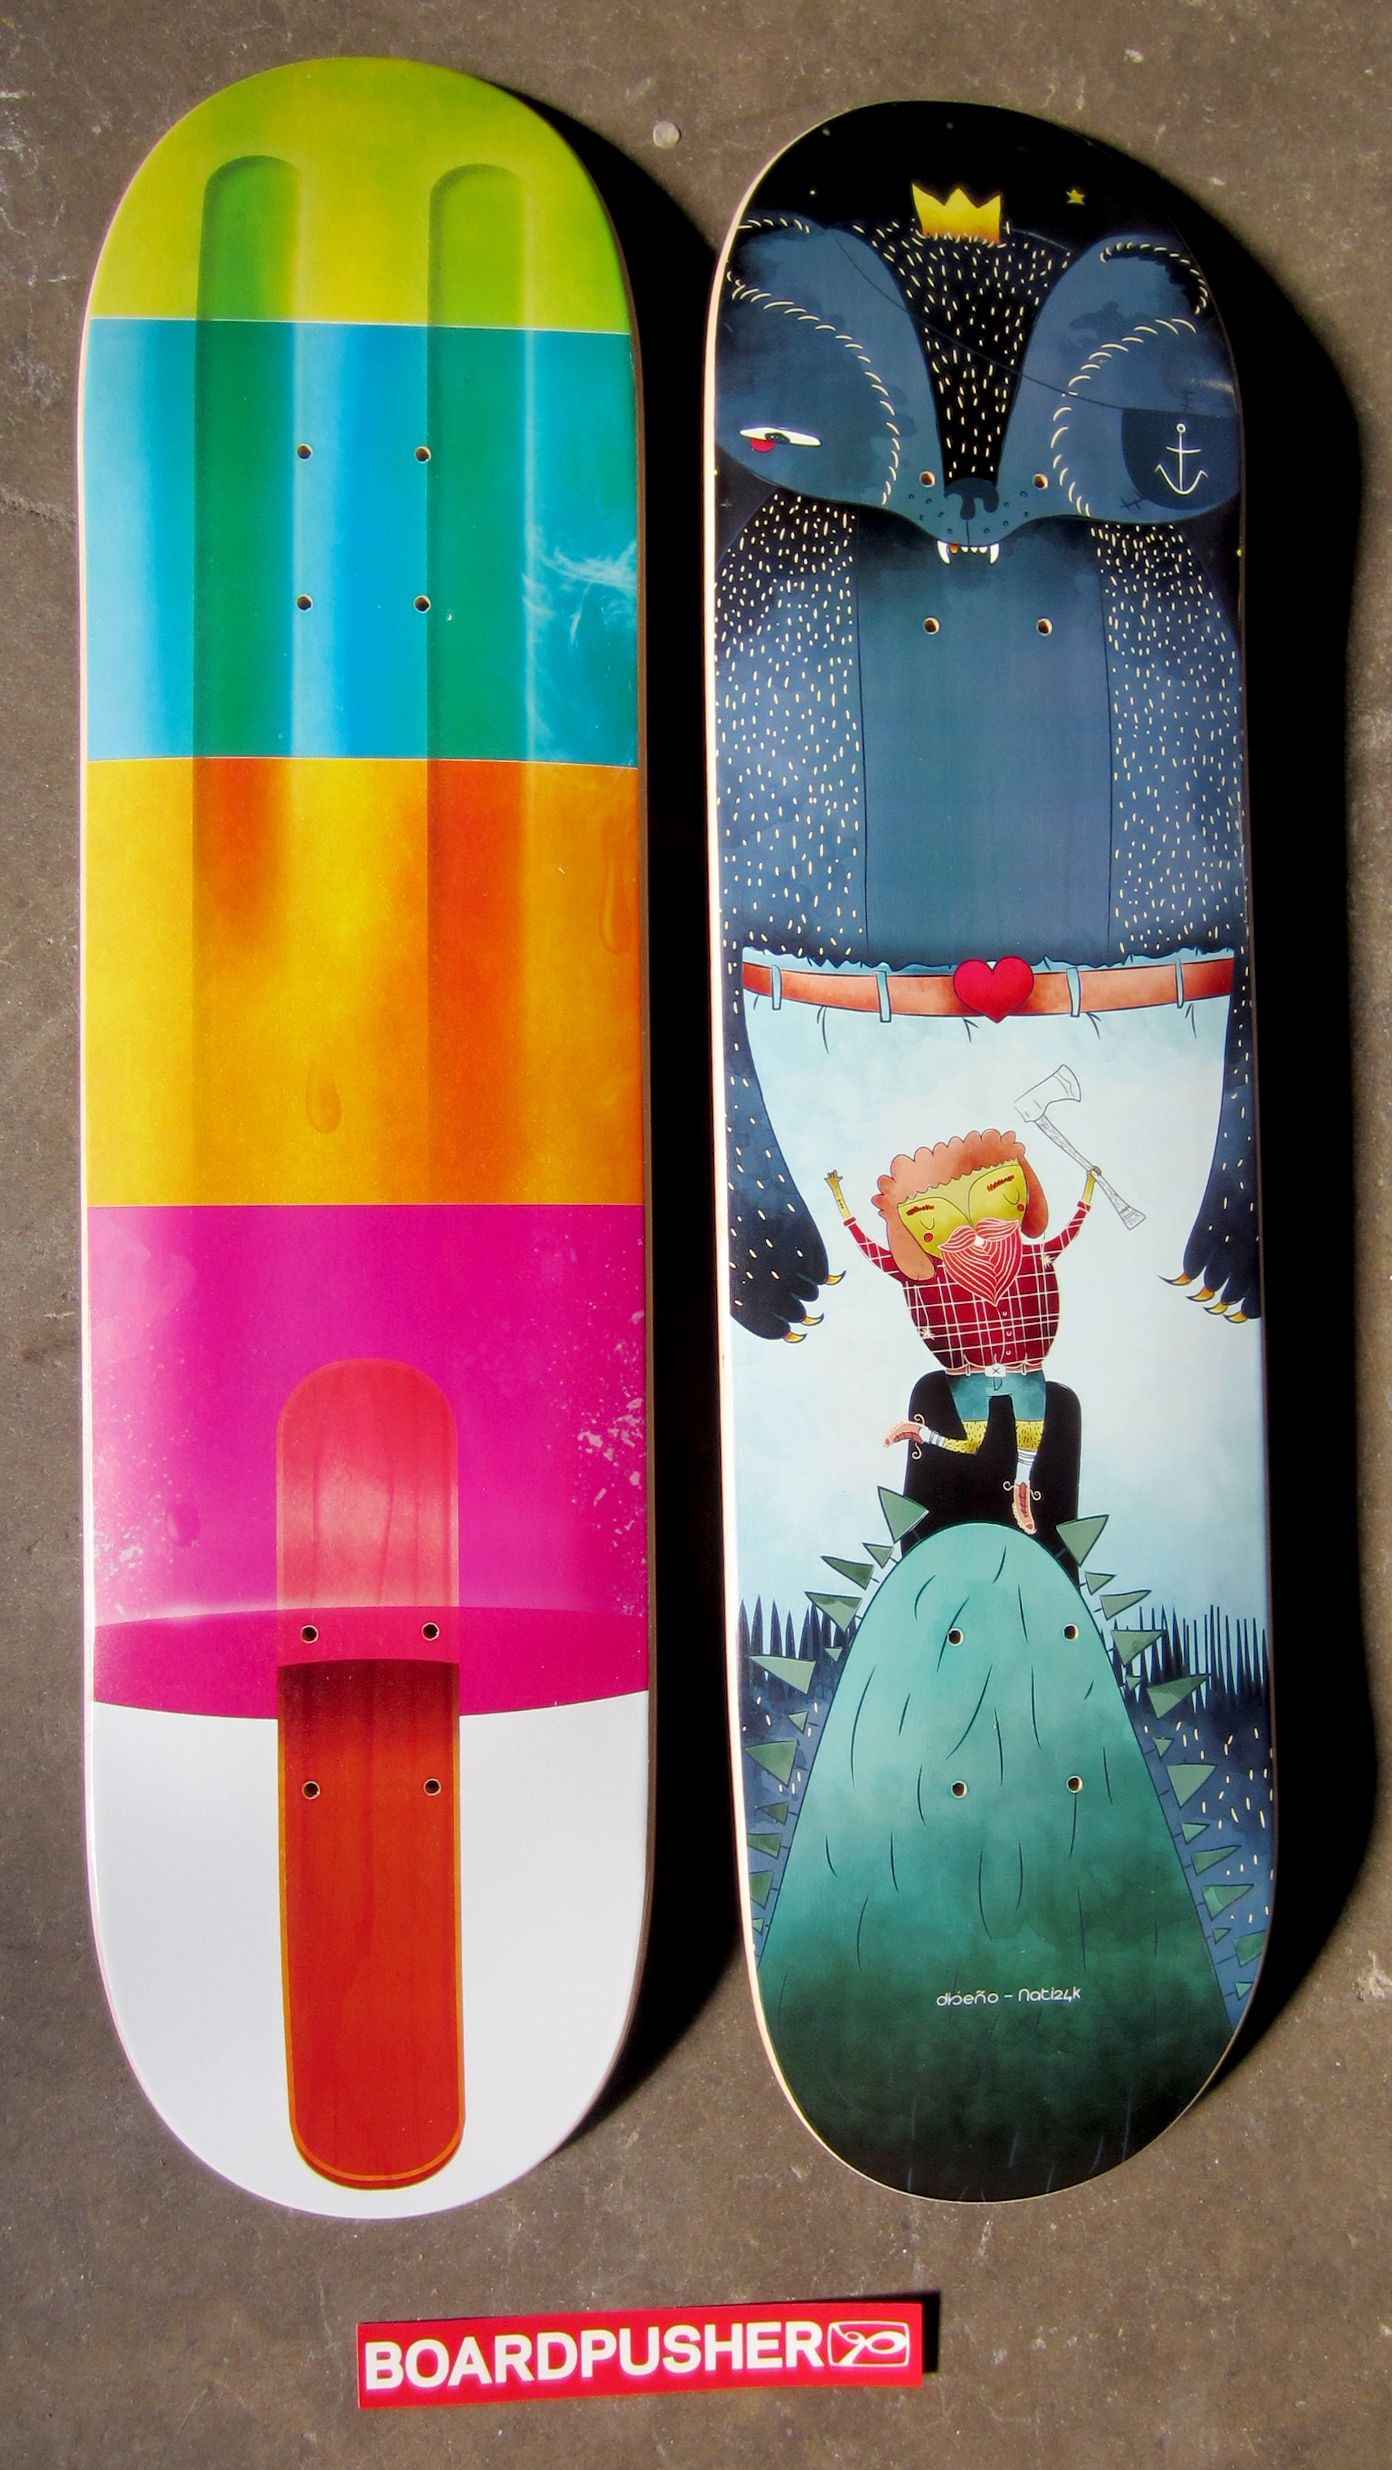 We Have A Couple More Skateboard Graphics Designed By Diego Campos For His Campos Boards Project These Www Boardp Skateboard Skateboard Art Custom Skateboards